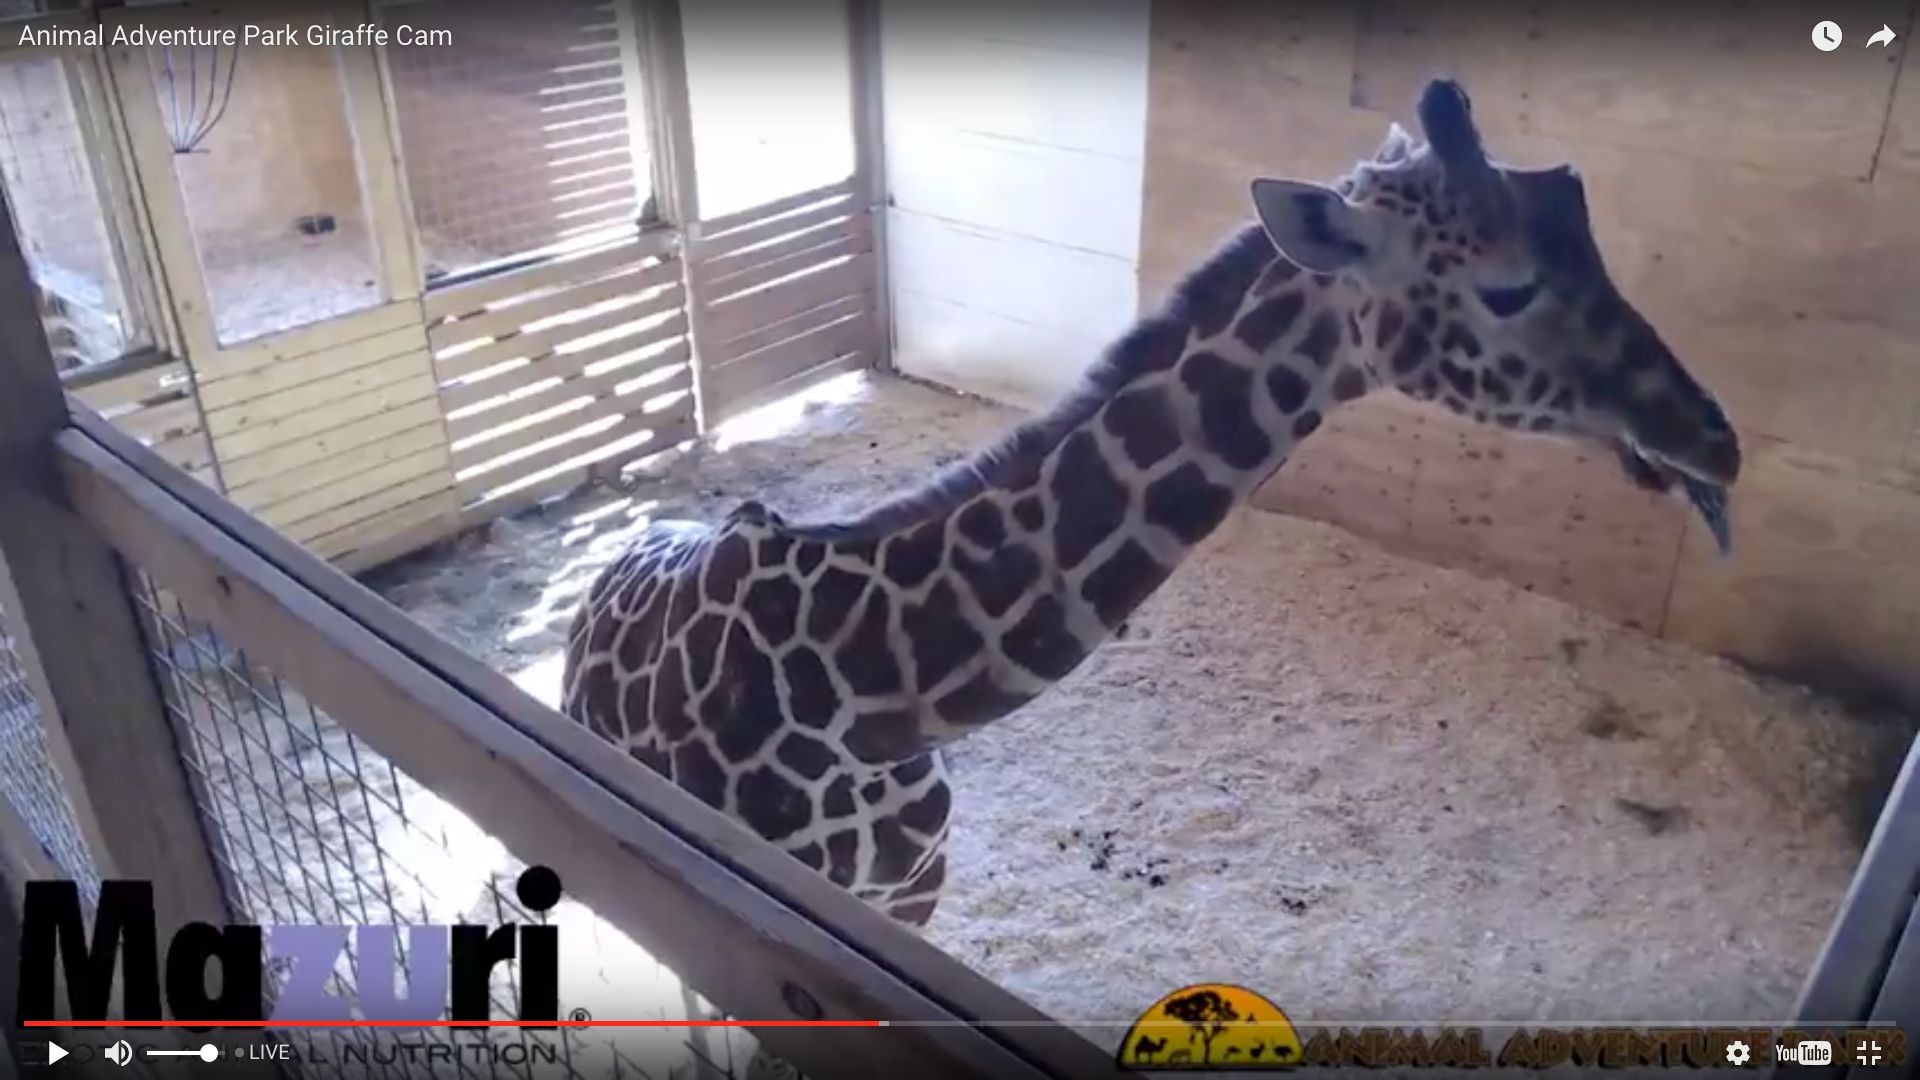 April, a 15-year-old pregnant giraffe, has become a YouTube star with millions of people tuned in to watch her give birth.